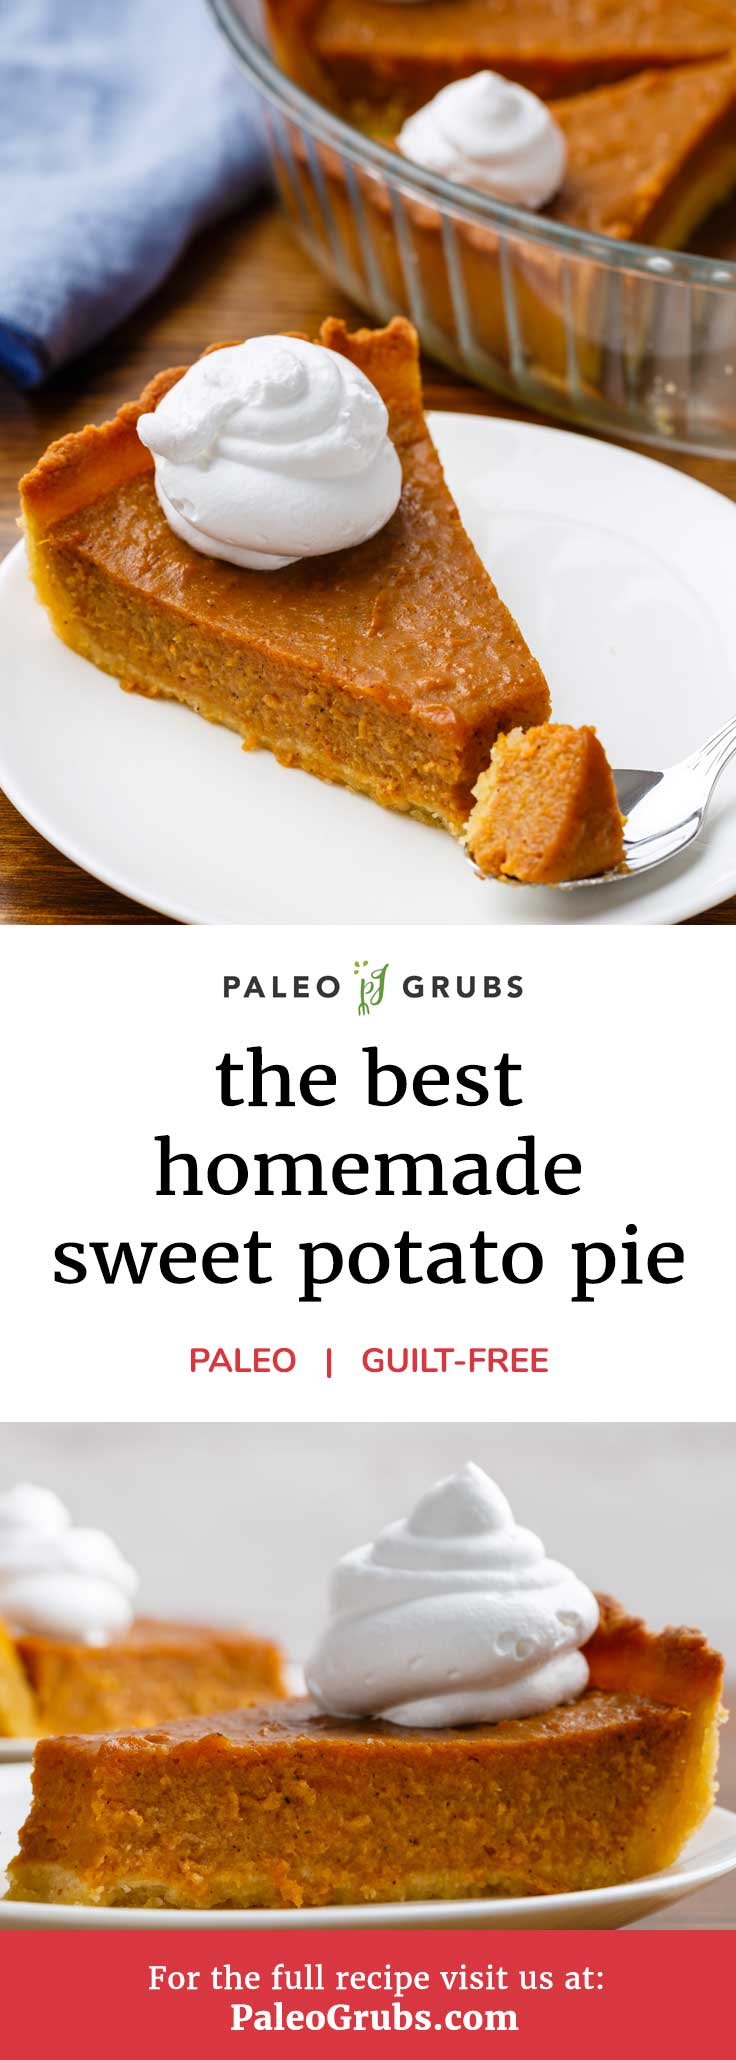 Who needs apple pie or pecan pie when you can enjoy an unbelievably tasty homemade sweet potato pie? This recipe is right on time for the holiday season and makes one mean pie for dessert. It's got it all - an exceptionally tasty pie crust, a deliciously sweet and spicy filling, and it's all topped with some yummy whipped coconut cream. It all adds up to an incredible gluten and grain-free pie that's 100% paleo-friendly that you can enjoy absolutely guilt-free.